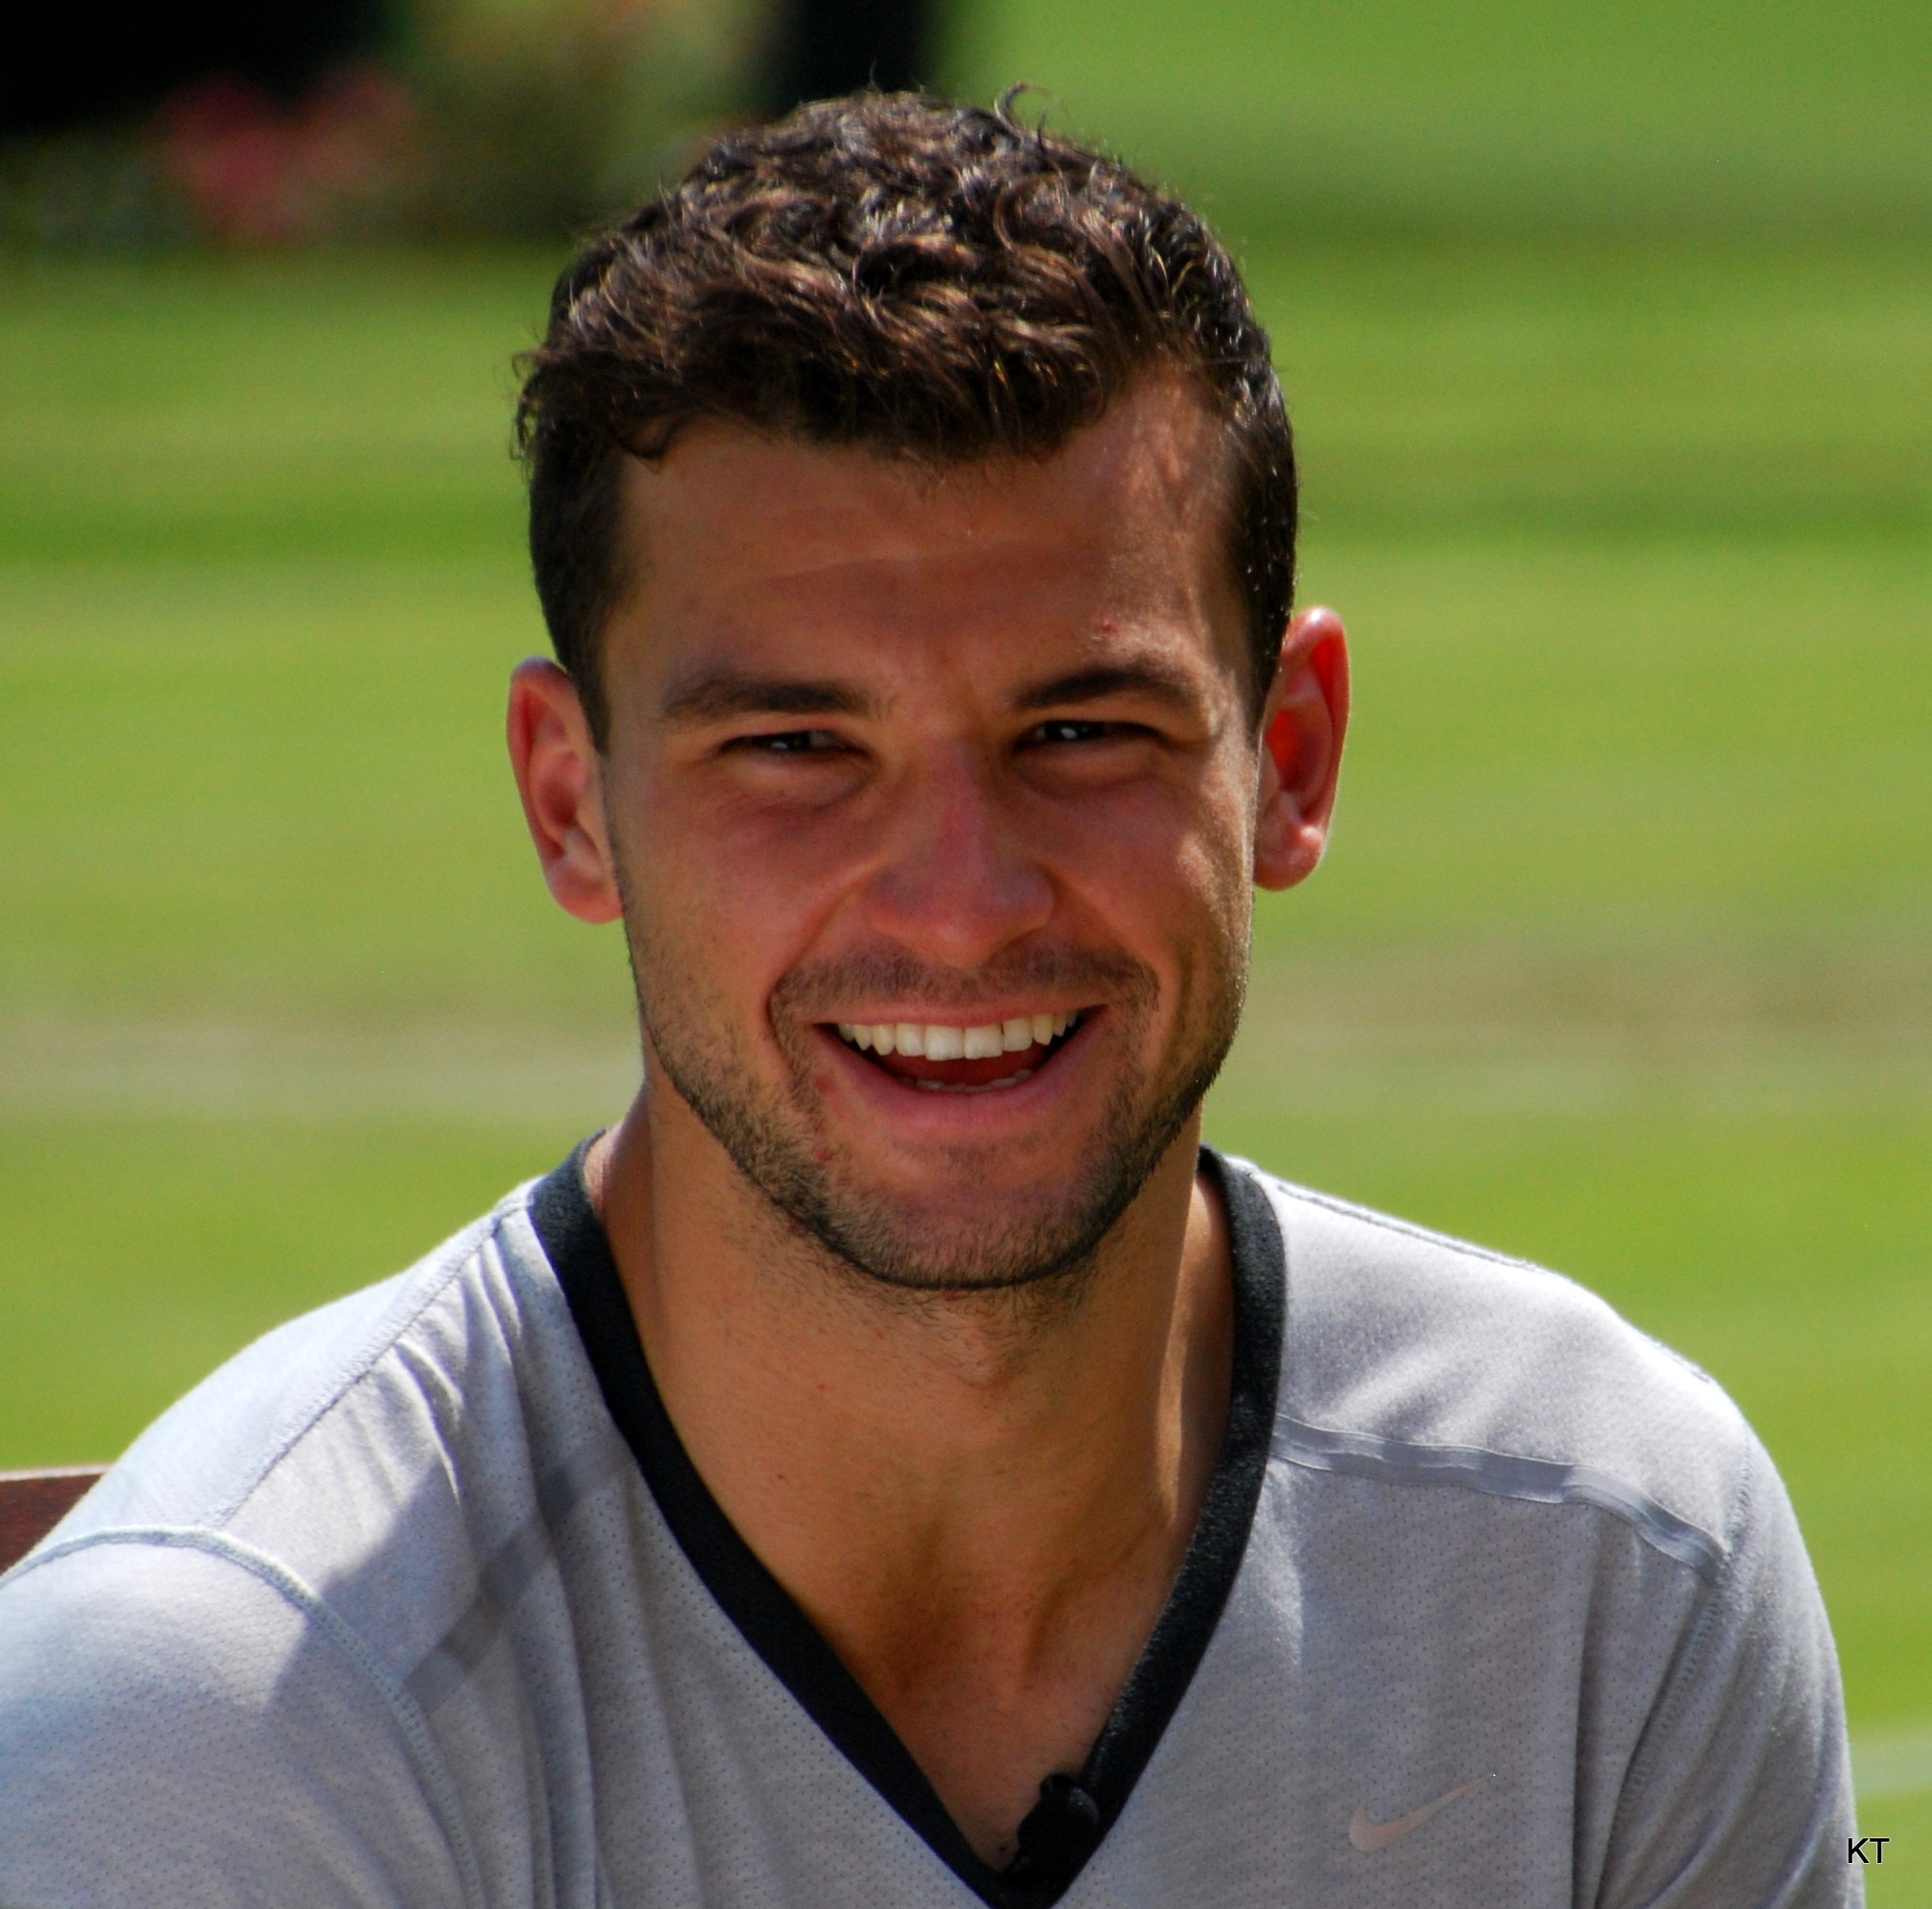 The 26-year old son of father  Dimitar Dimitrov and mother Maria Dimitrova, 190 cm tall Grigor Dimitrov in 2017 photo